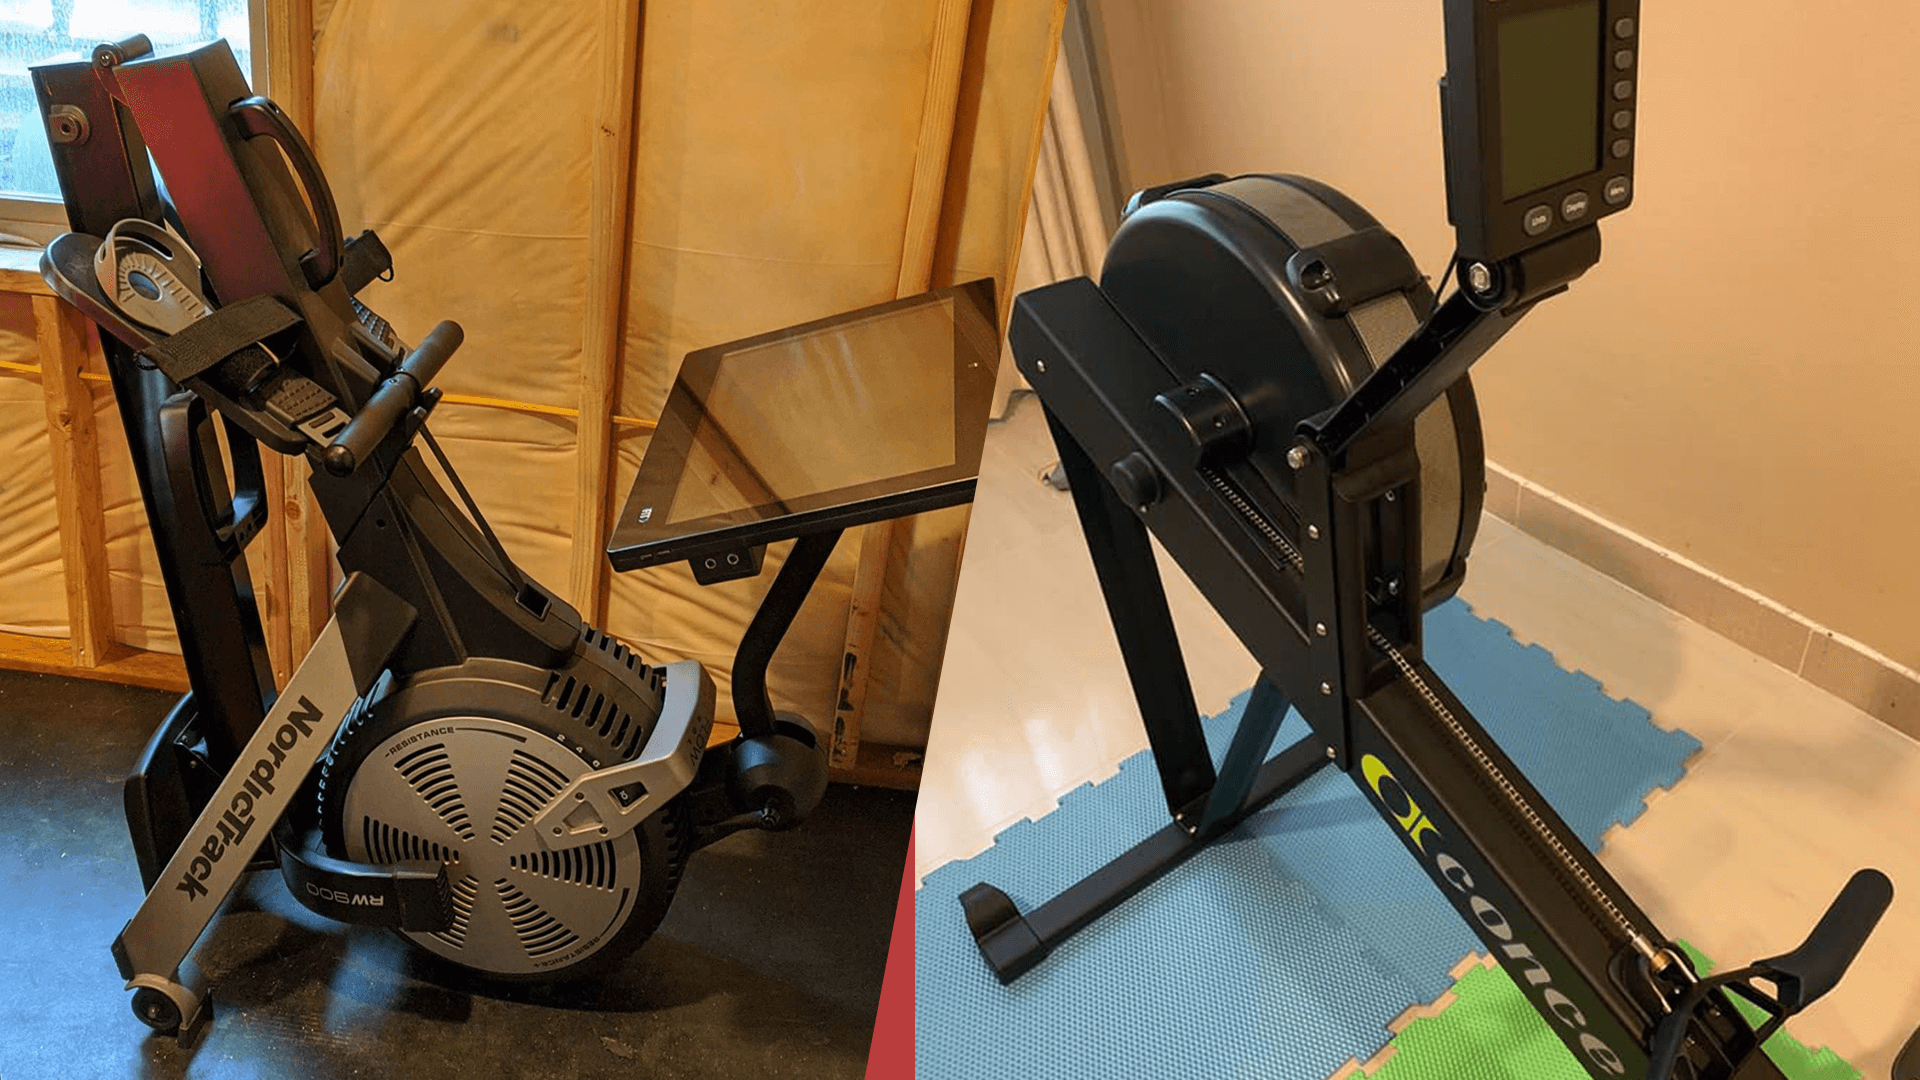 Comparing the size of the NordicTrack RW900 the Concept 2 Model D